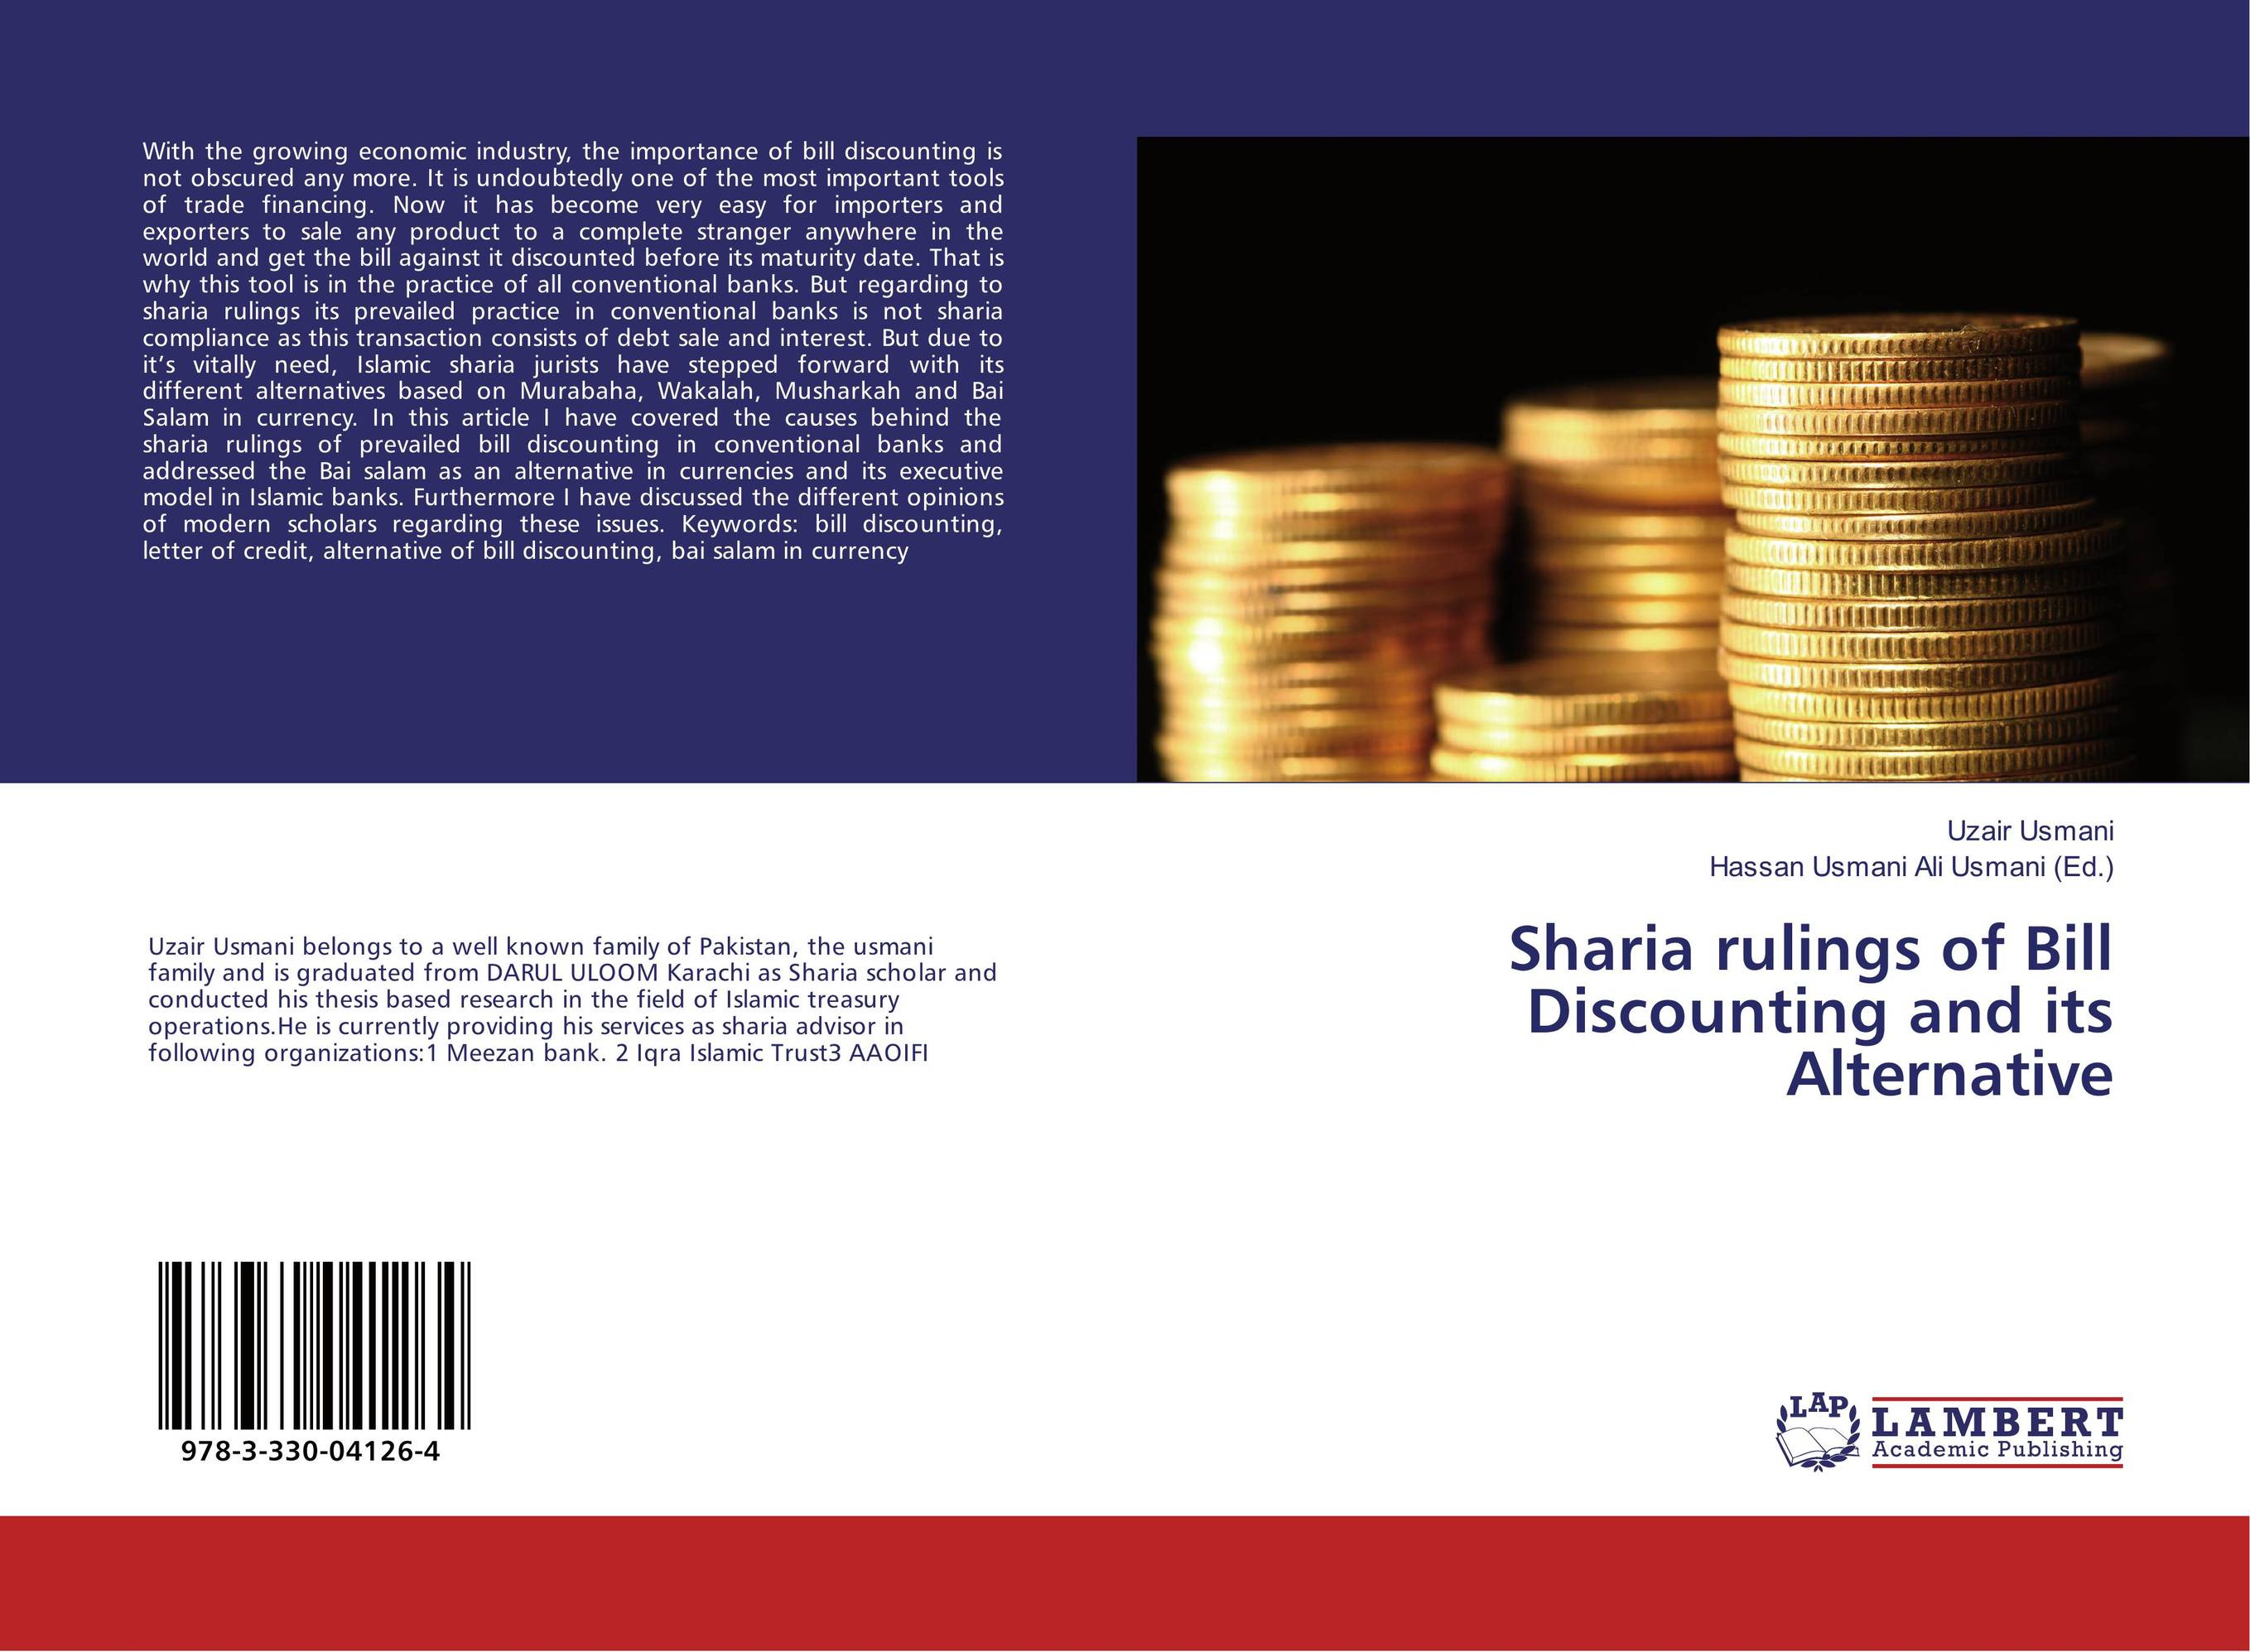 thesis islamic banking conventional banking Comparison between islamic banking and conventional banking comparison between islamic banking and conventional banking introduction as far as commercial banking is referred, there are two main differences from the traditional approaches (conventional or islamic), and these are very significant evolutions.